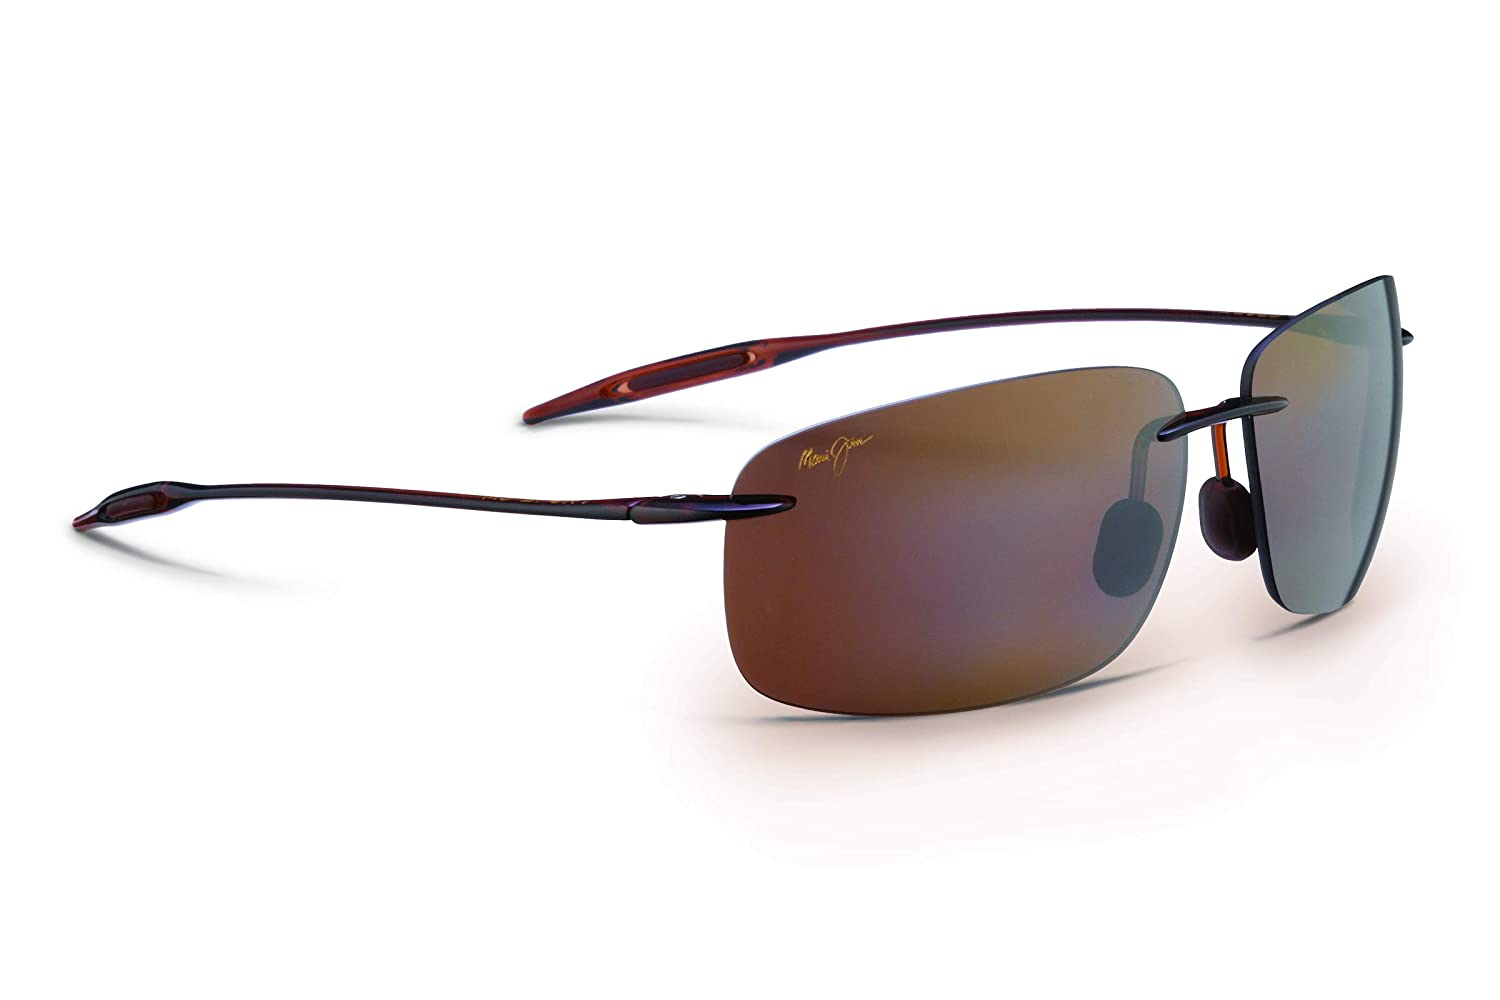 Maui Jim Sunglasses | Breakwall 422 | Rimless Frame, Polarized Lenses, with Patented PolarizedPlus2 Lens Technology